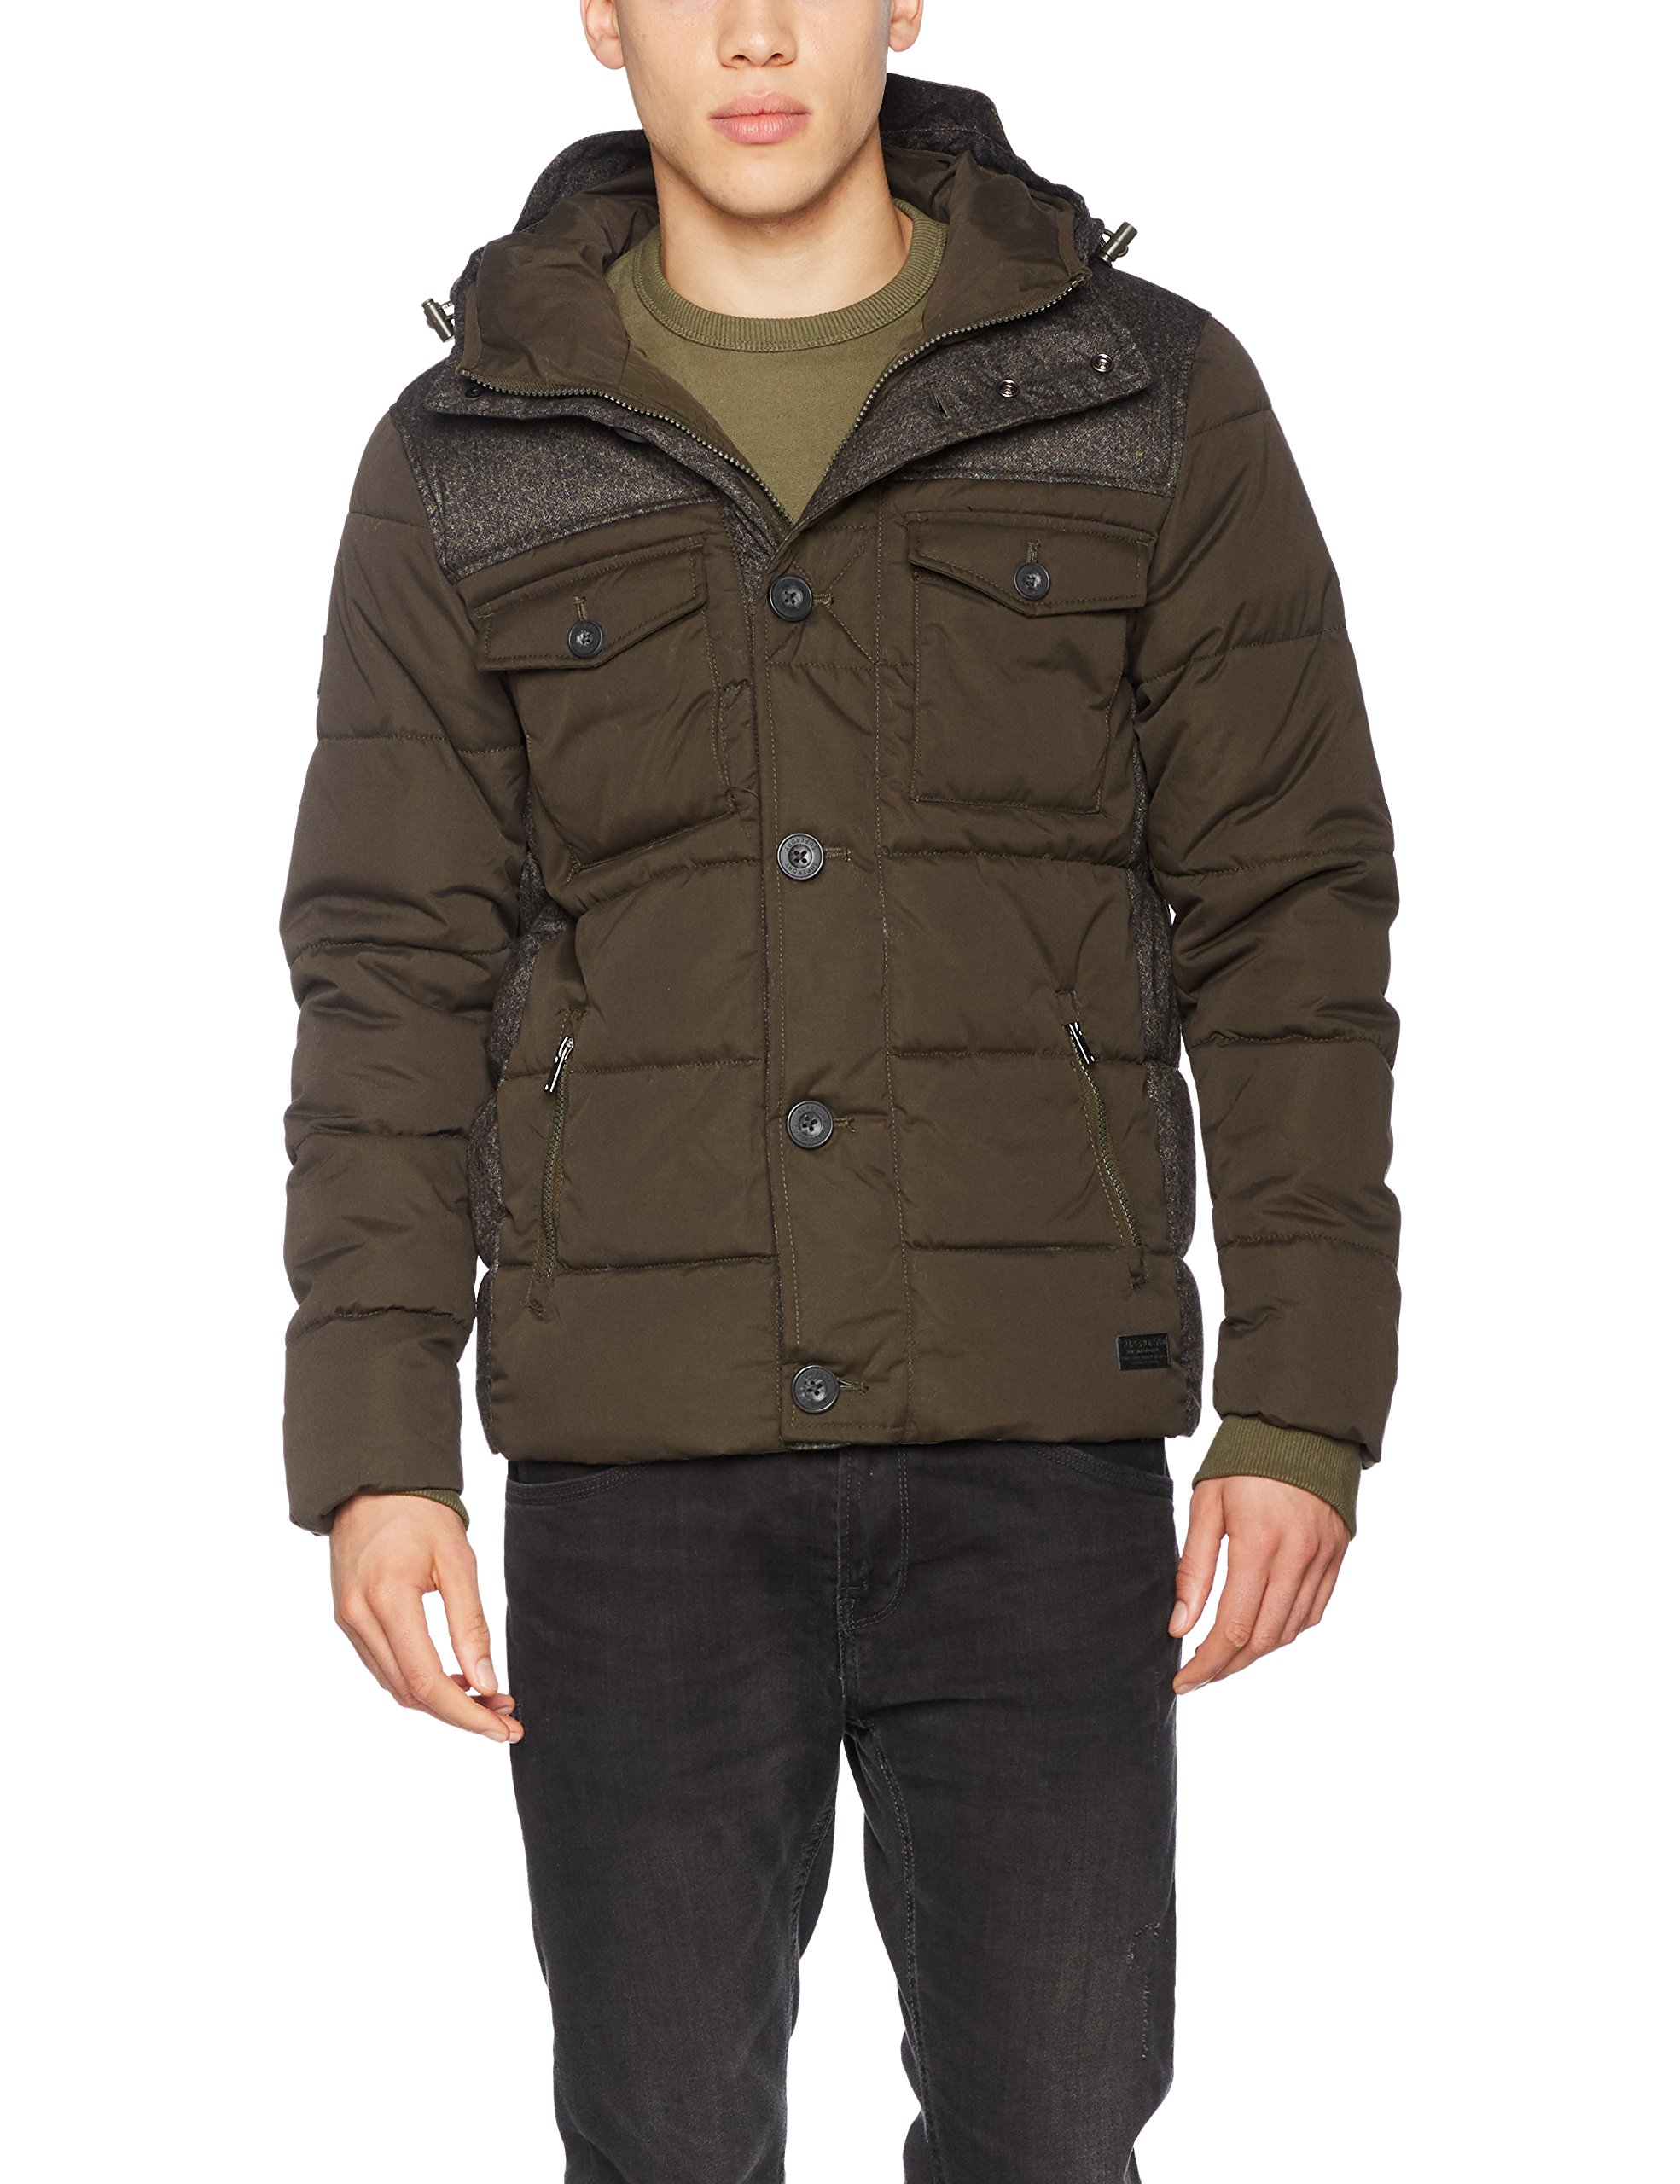 Veste Superdry Tech De SportVertkhakitaille FabricantX Jacket Tweed smallHomme pqUVSMzG